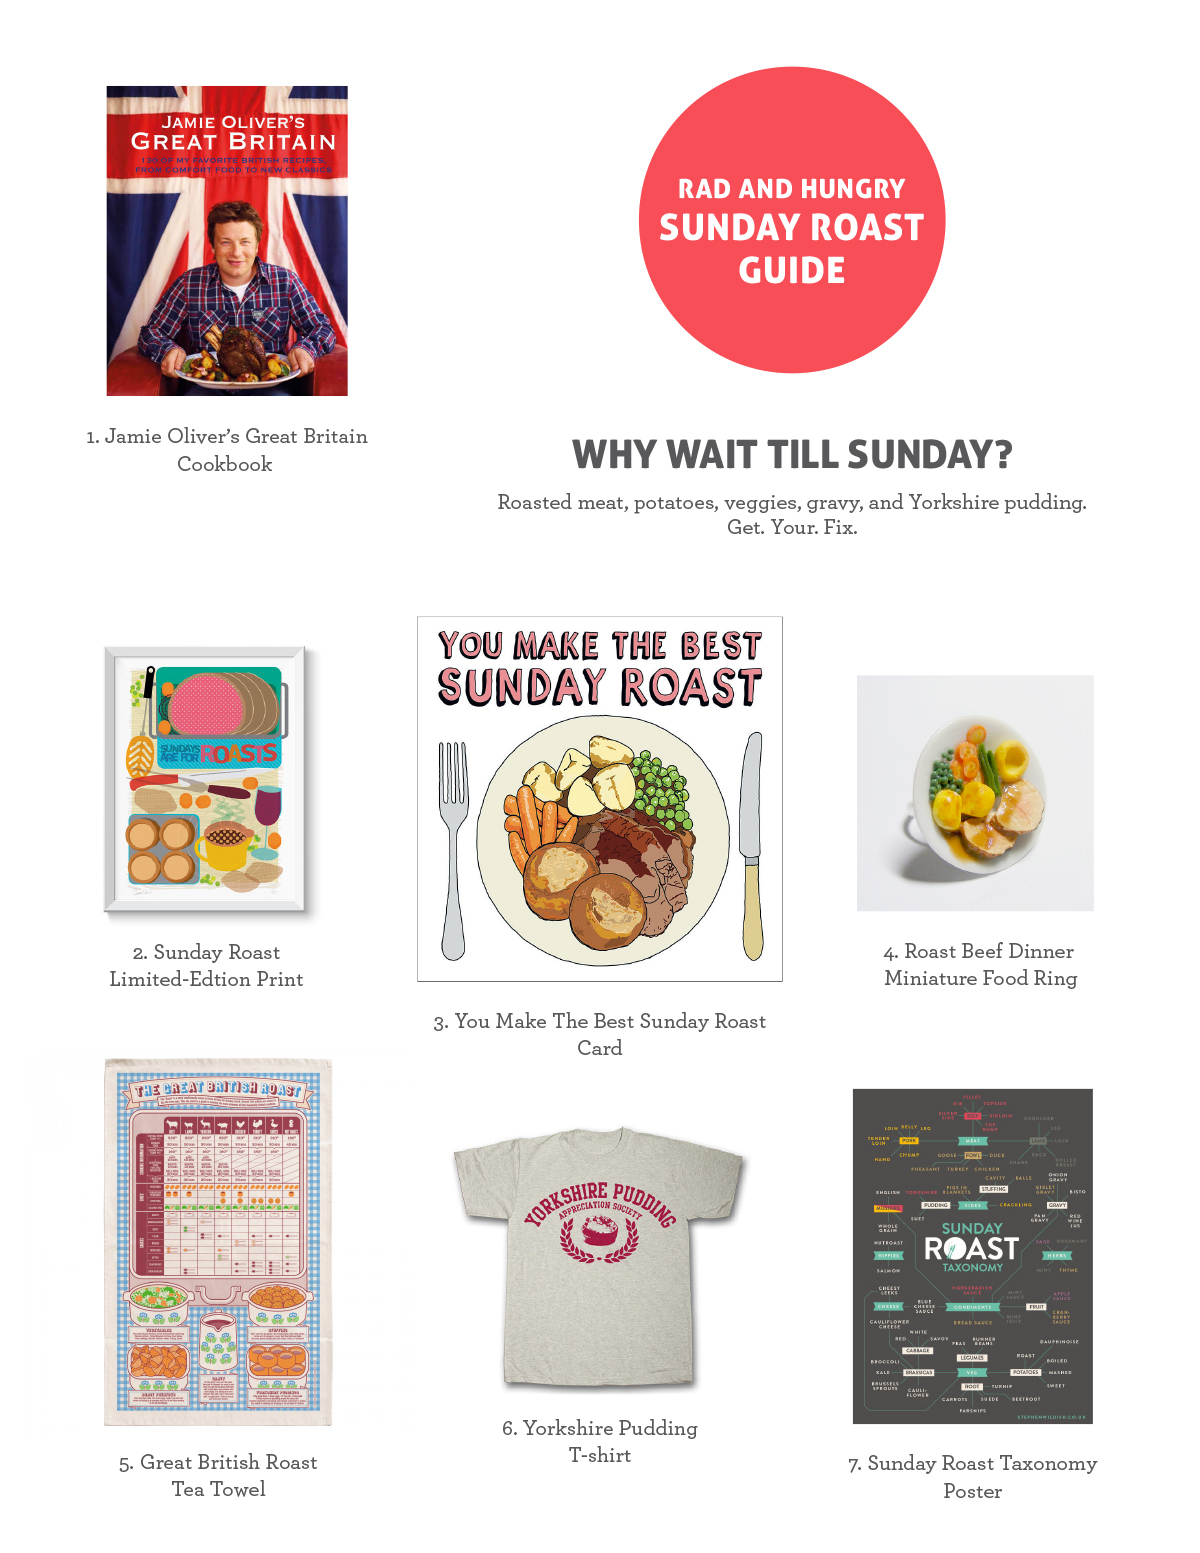 RAD AND HUNGRY Sunday Roast Guide